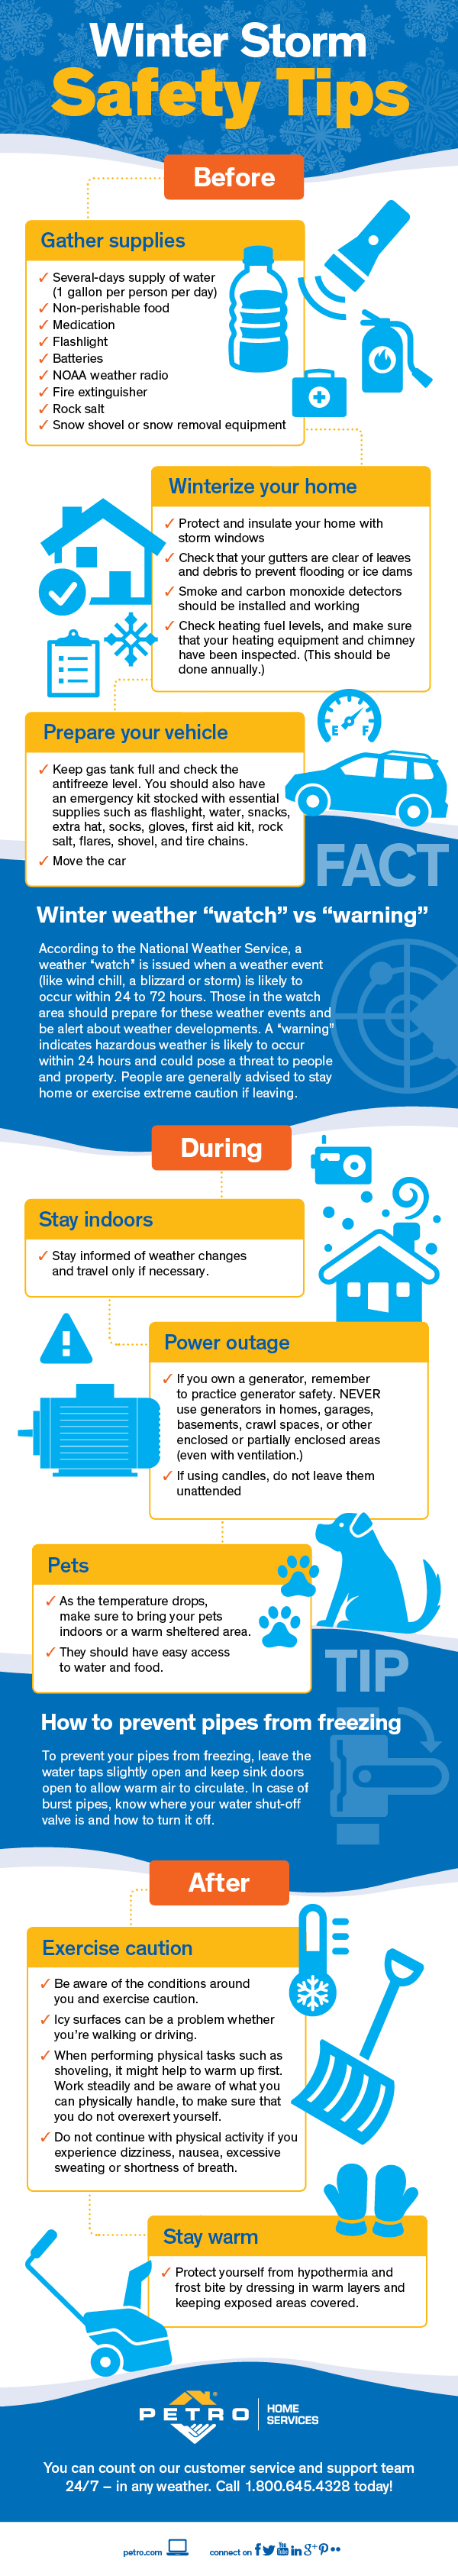 Winter Storm Safety Tips #infographic